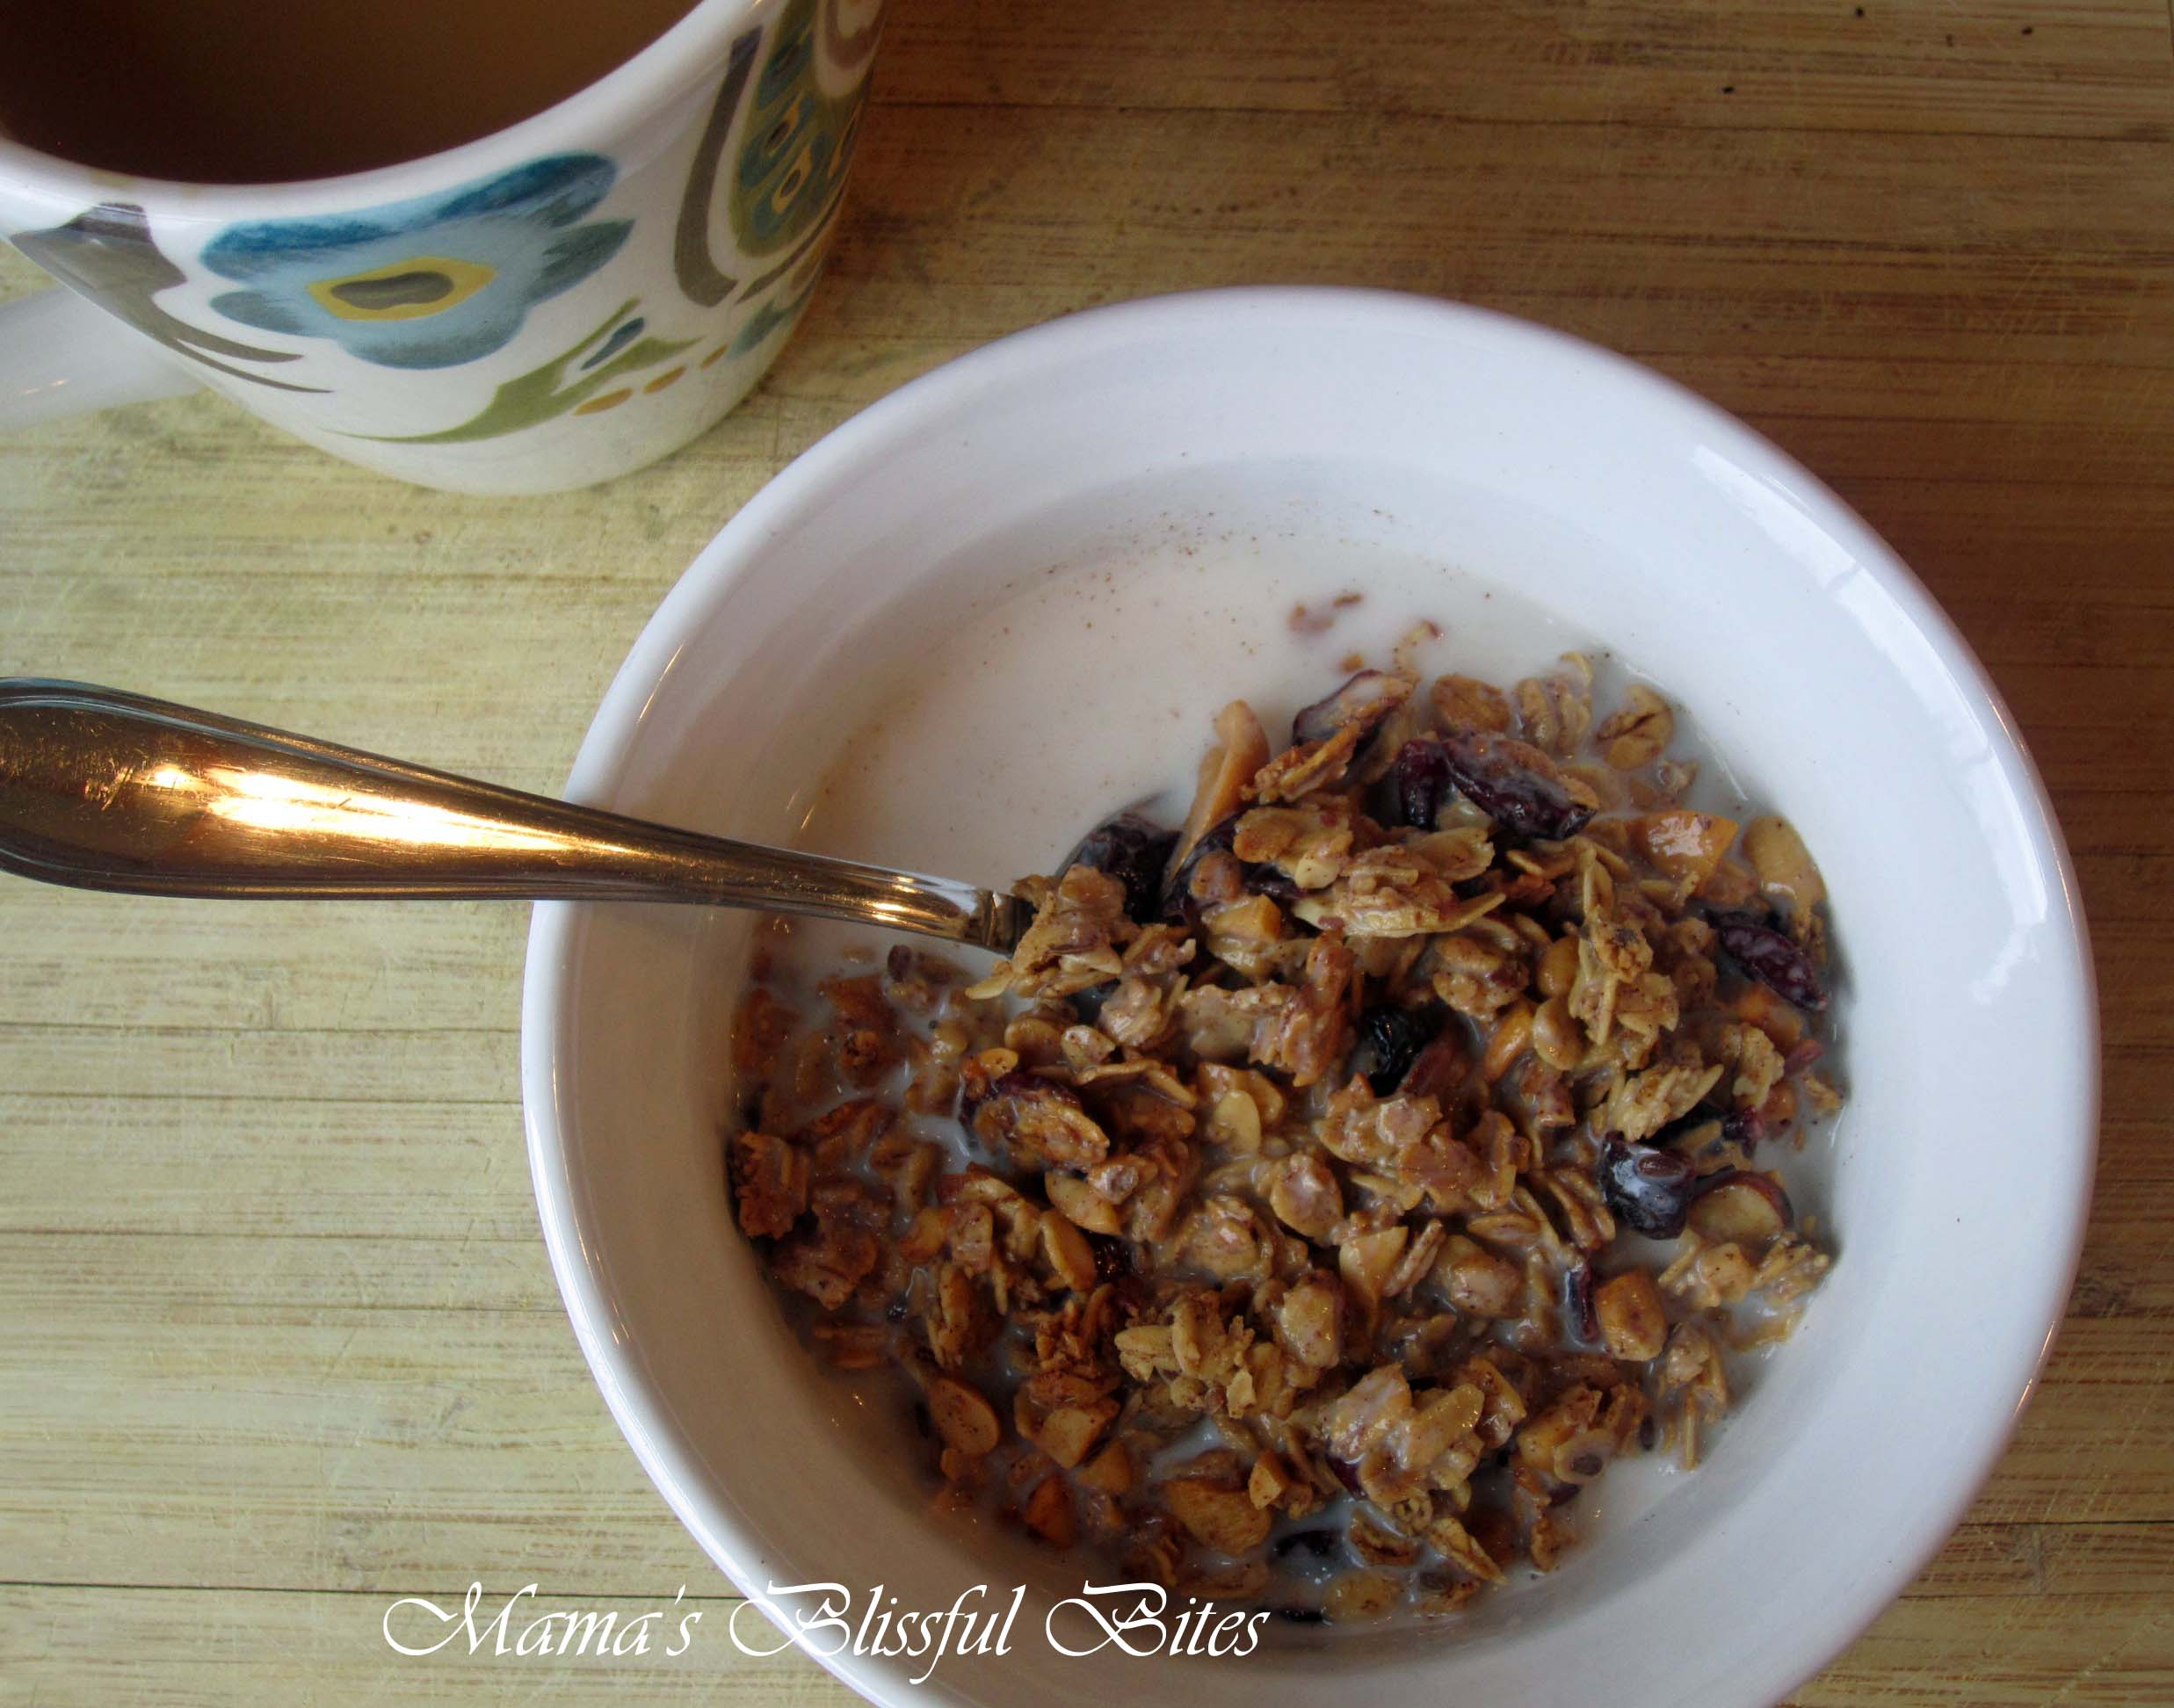 Cherry oat cereal with cashews and almonds mamas blissful bites ccuart Gallery